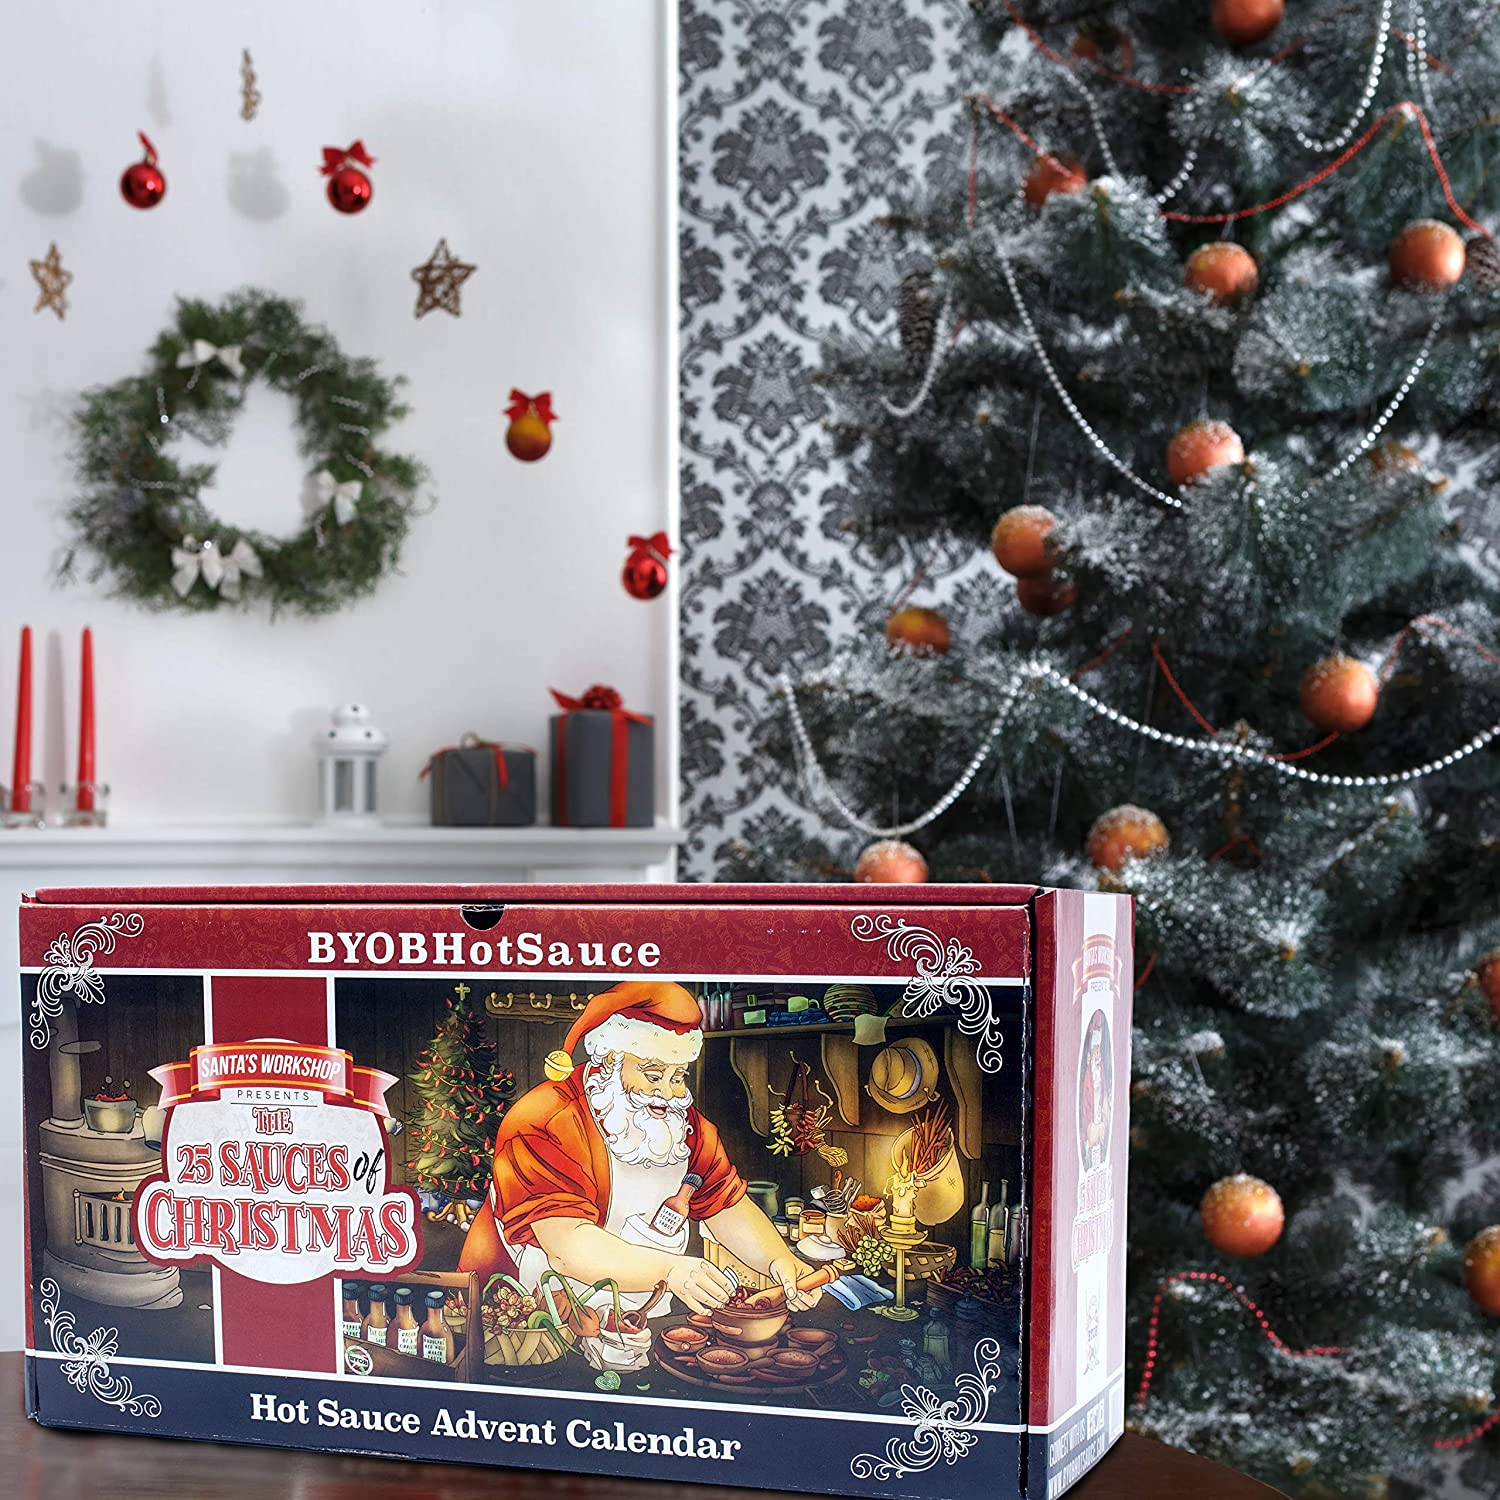 Amazon.com : Hot Sauce Gift Set - 2018 Advent Calendar - The 25 Sauces of  Christmas Countdown to Santa Clause - Also Makes a Great Gift For Christmas  Day ...